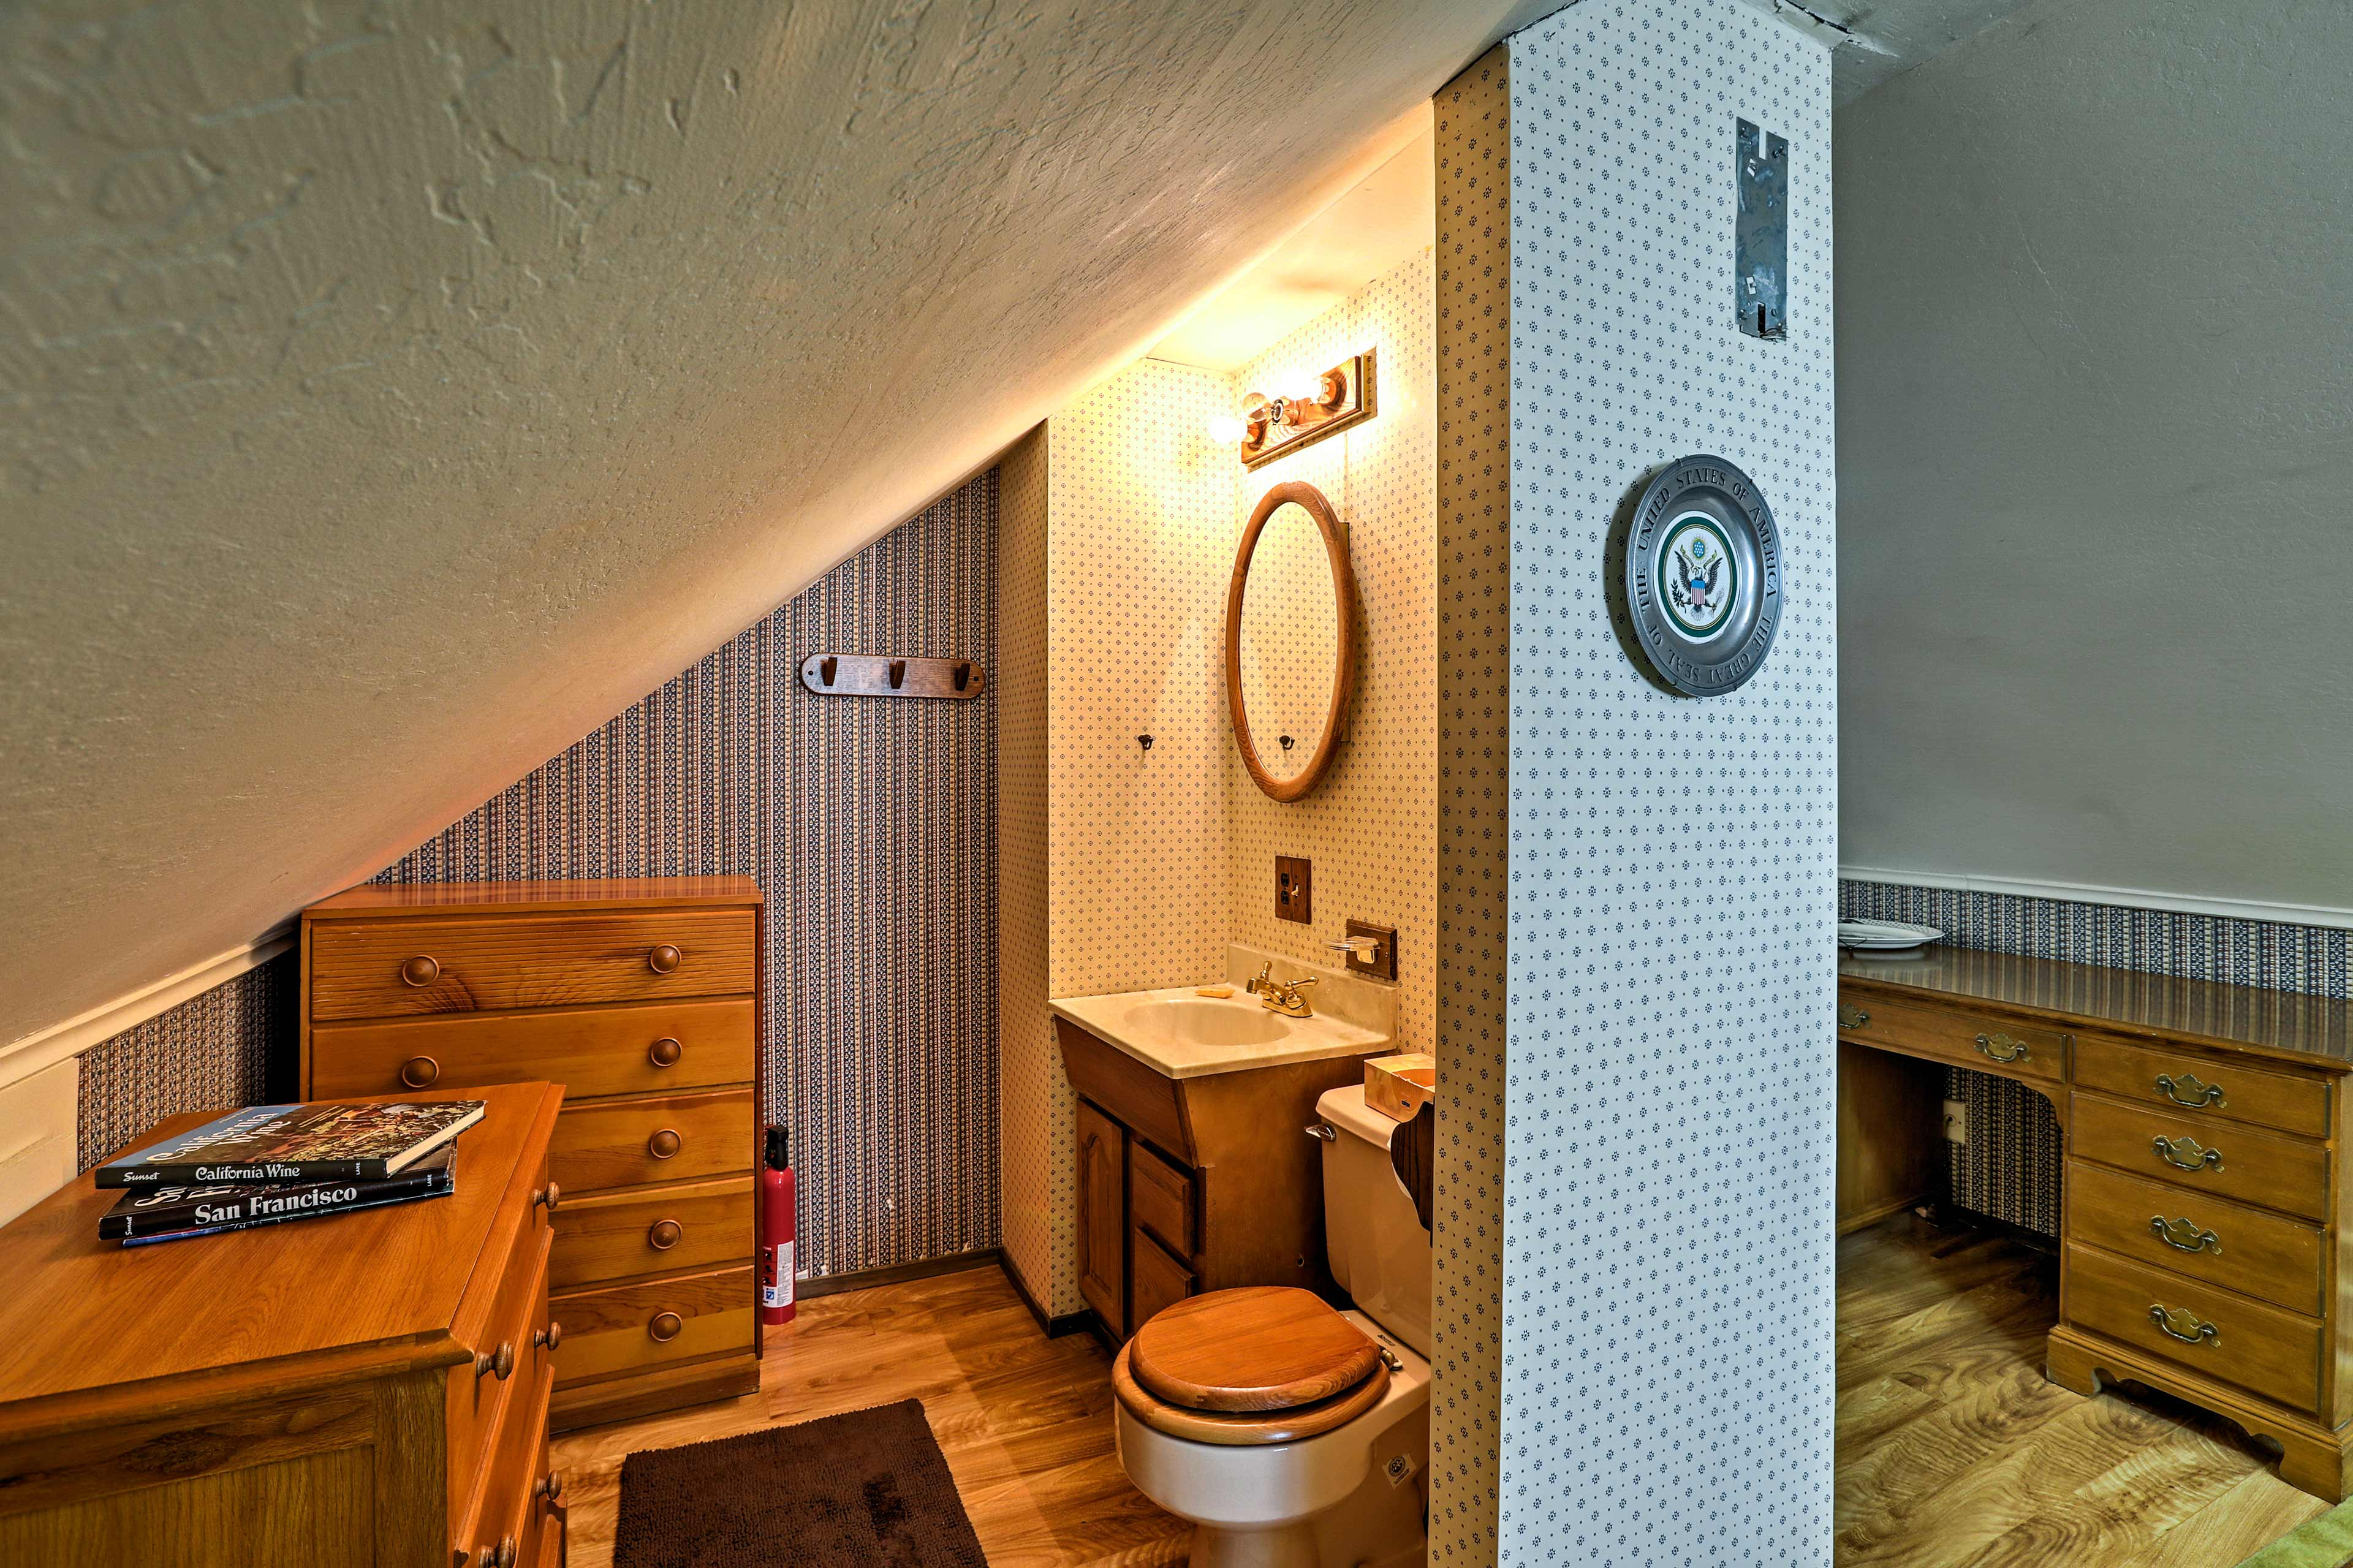 A private half bath sits right off the room.